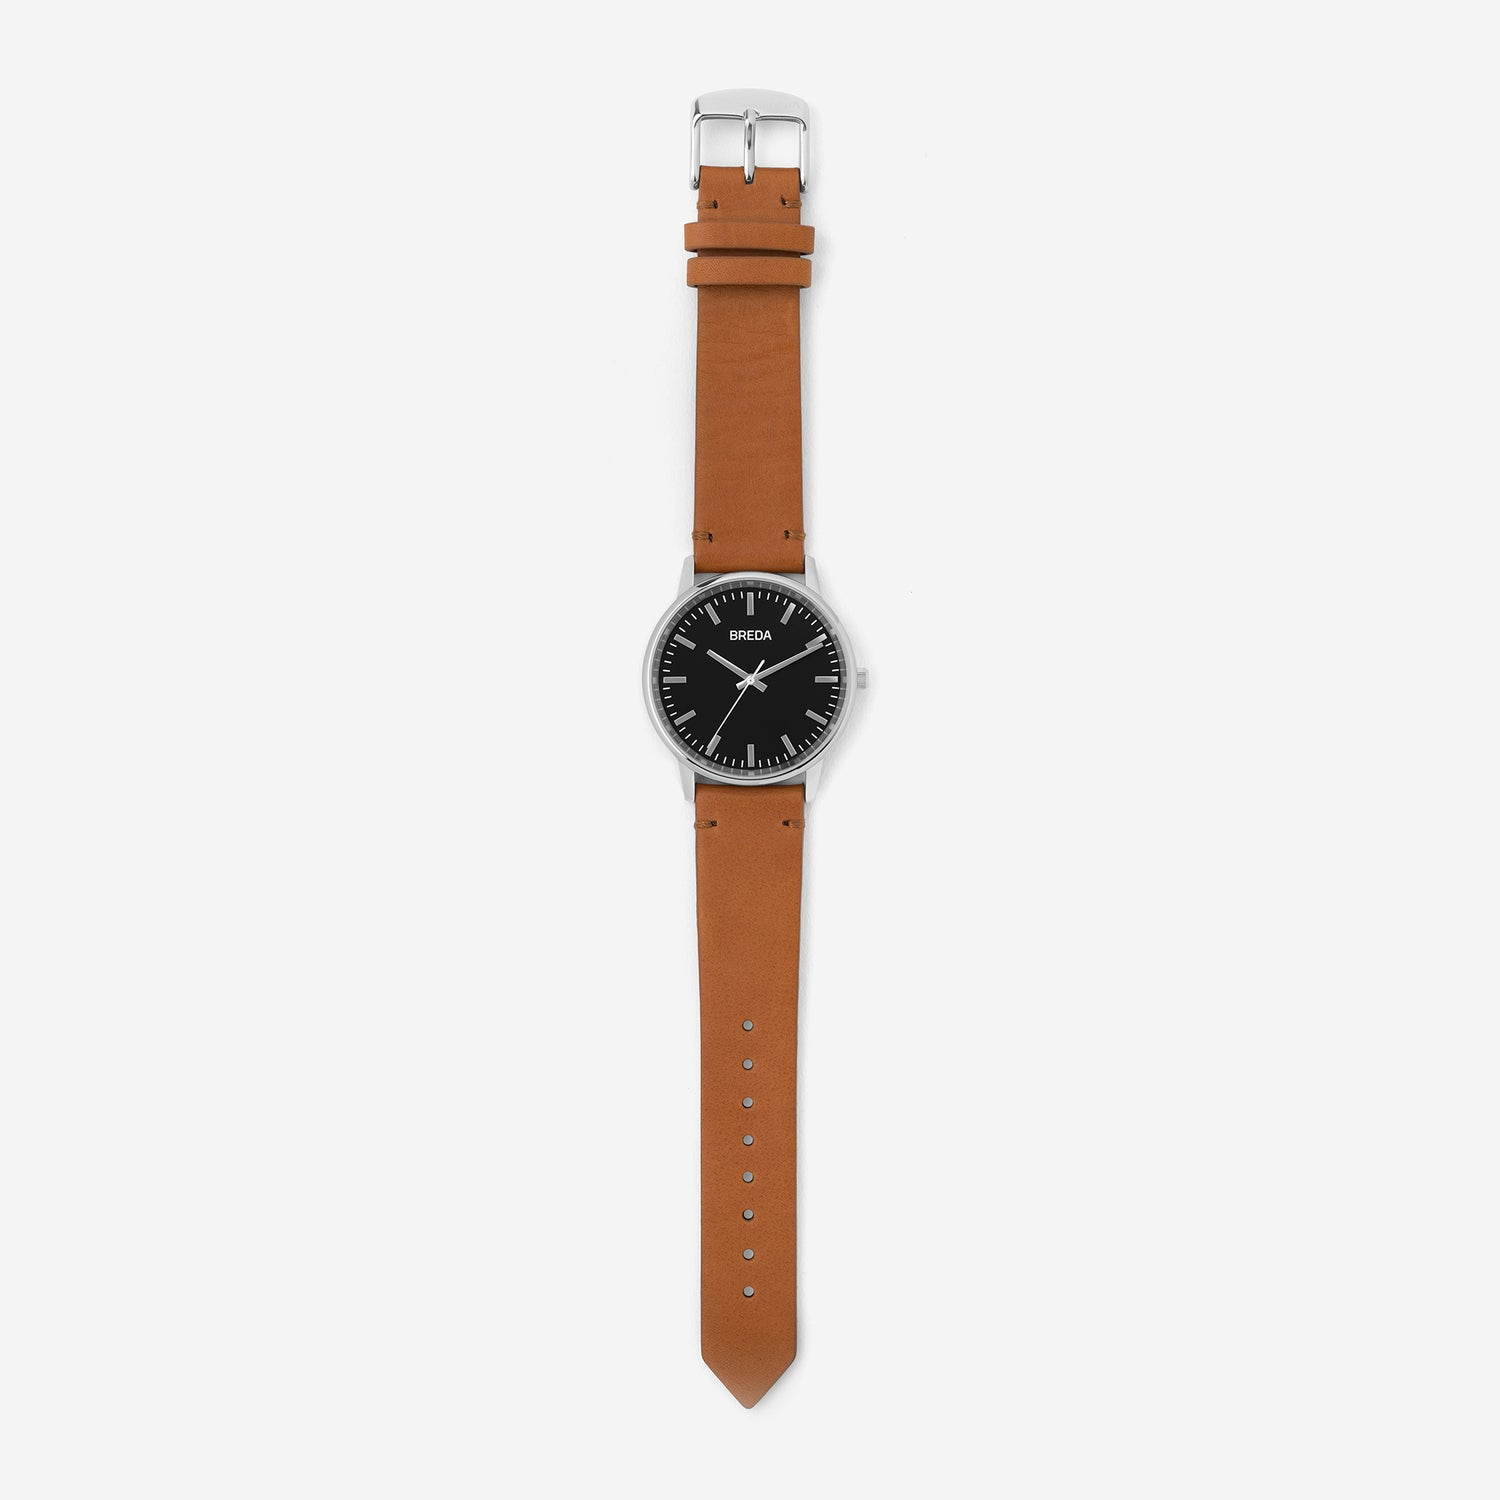 breda-zapf-1697j-silver-brown-leather-watch-long